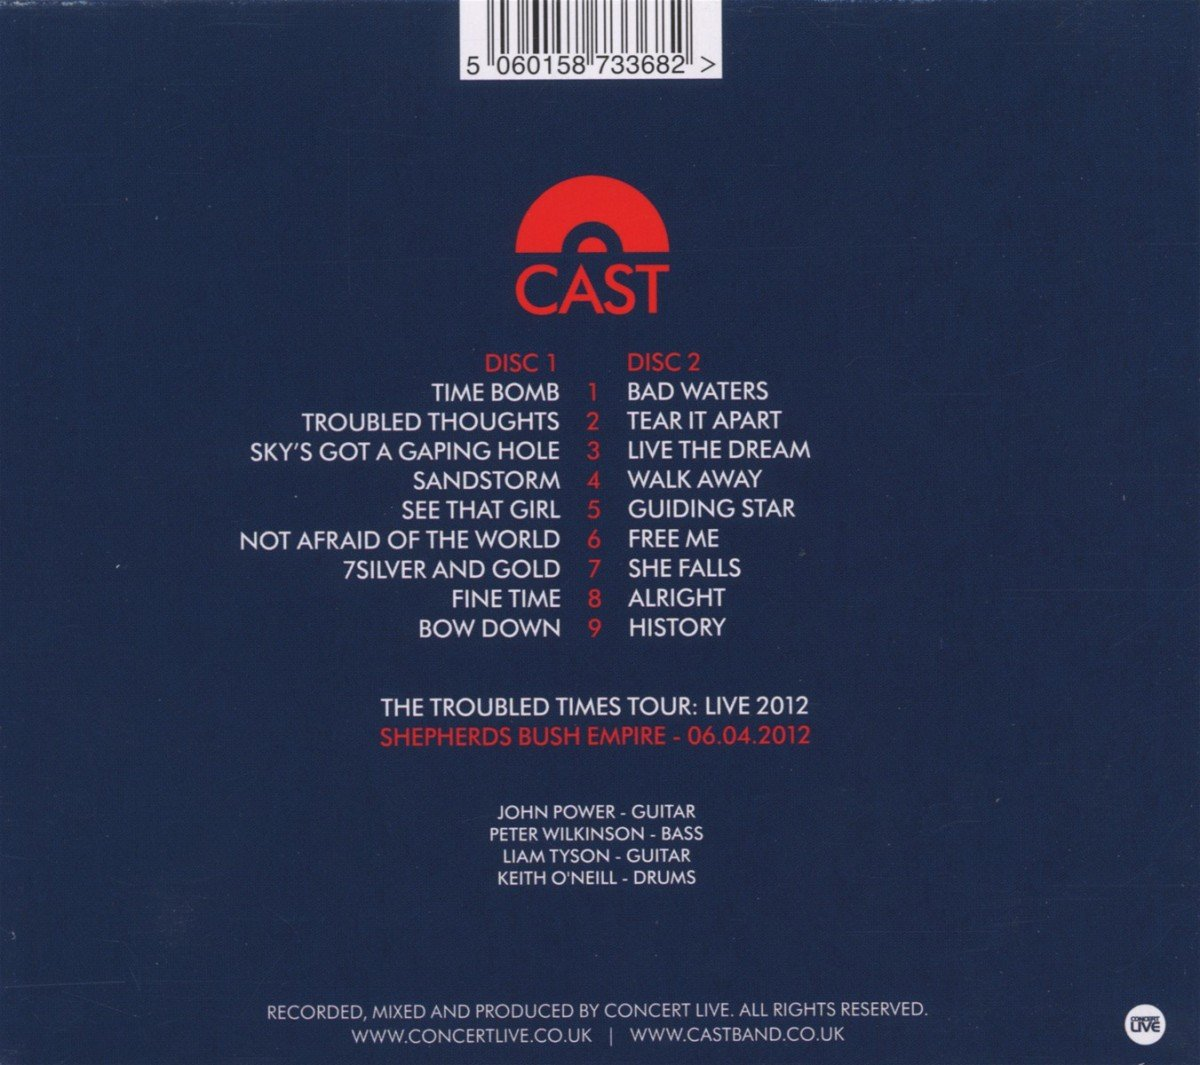 Troubled Times Tour: Live 2012 by 101 DISTRIBUTION